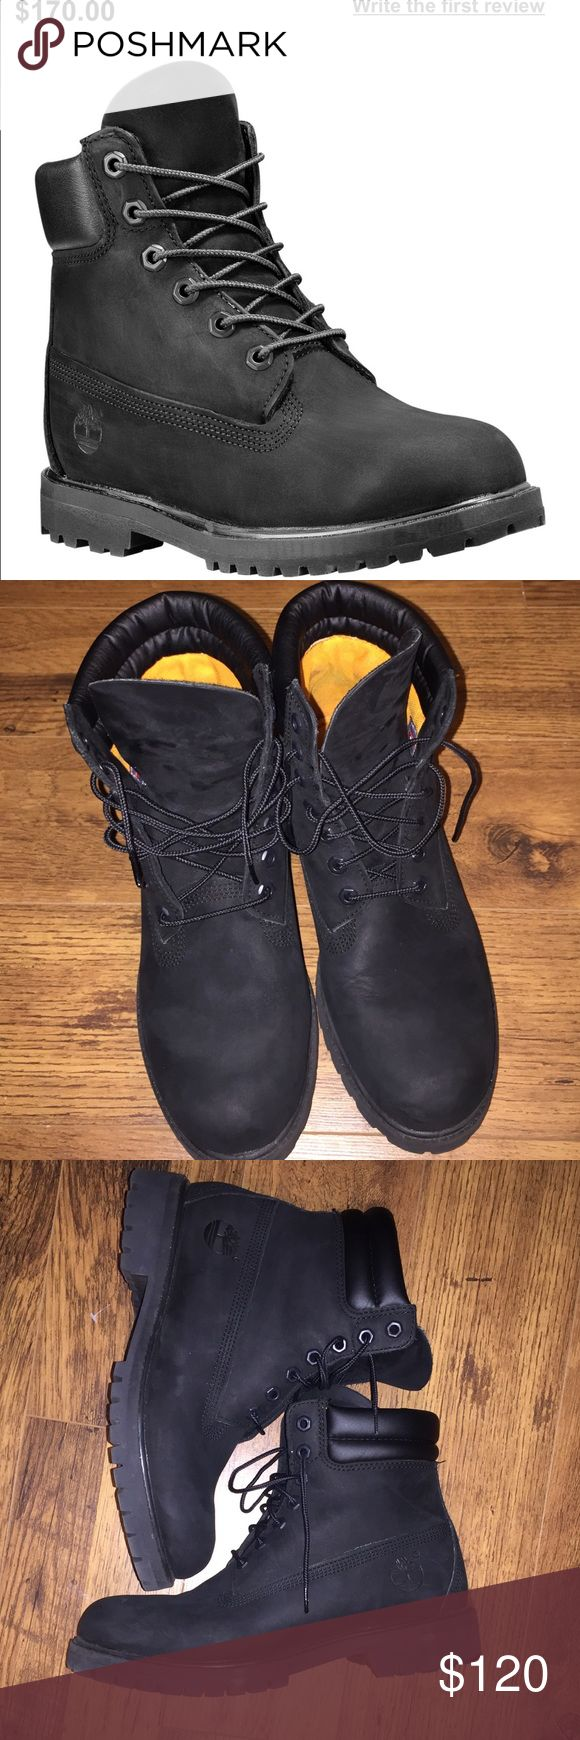 All Black Timberland boots All Black Timberland boots. Great Used condition. Look like new. Size 11 in women or size 9 in men. Timberland Shoes